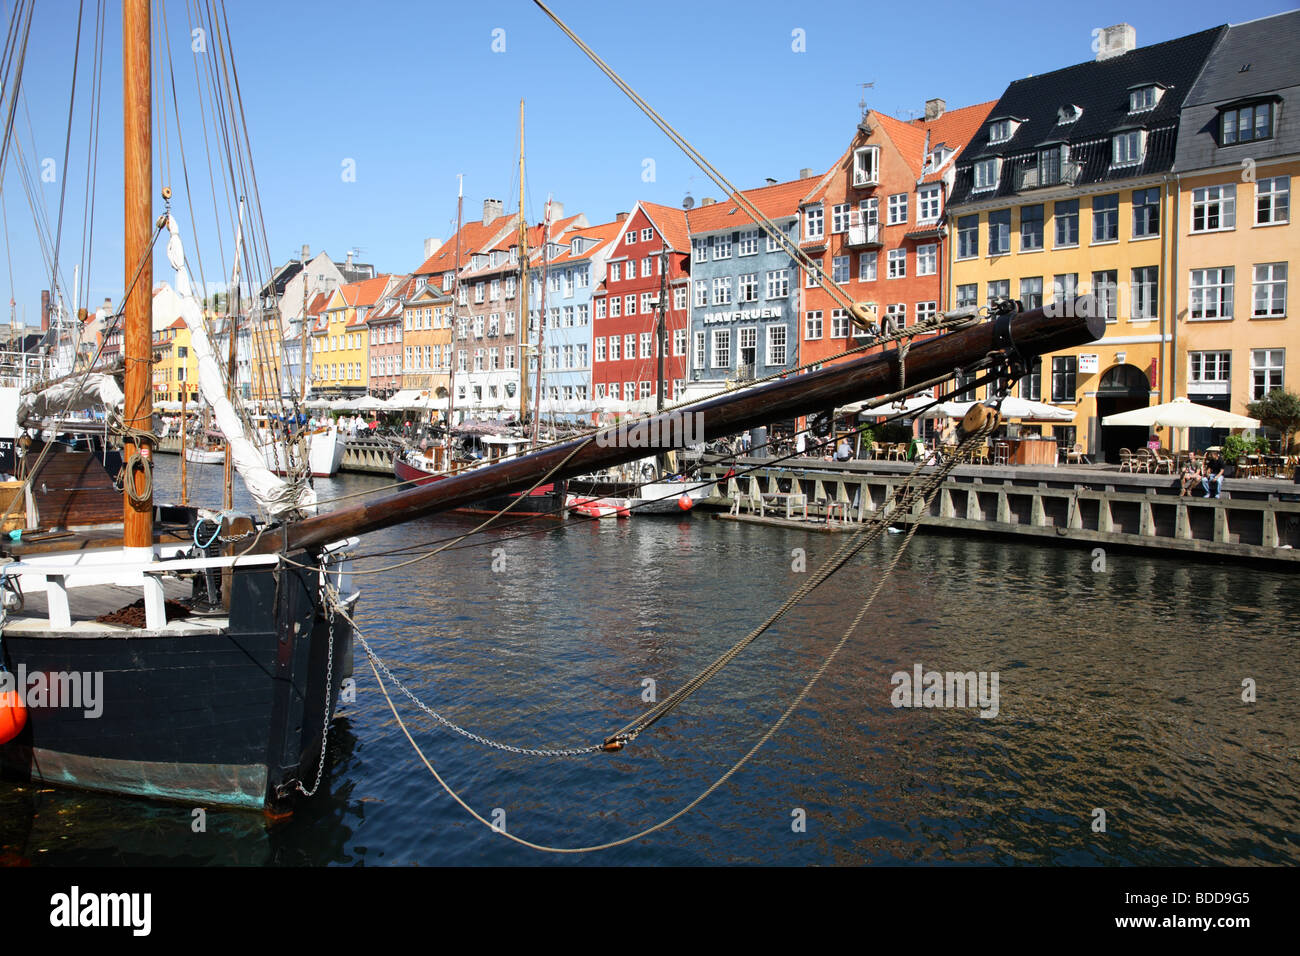 The canal in Nyhavn, Copenhagen - the old harbour quarter famous for  the old painted houses, restaurants, bars, - Stock Image